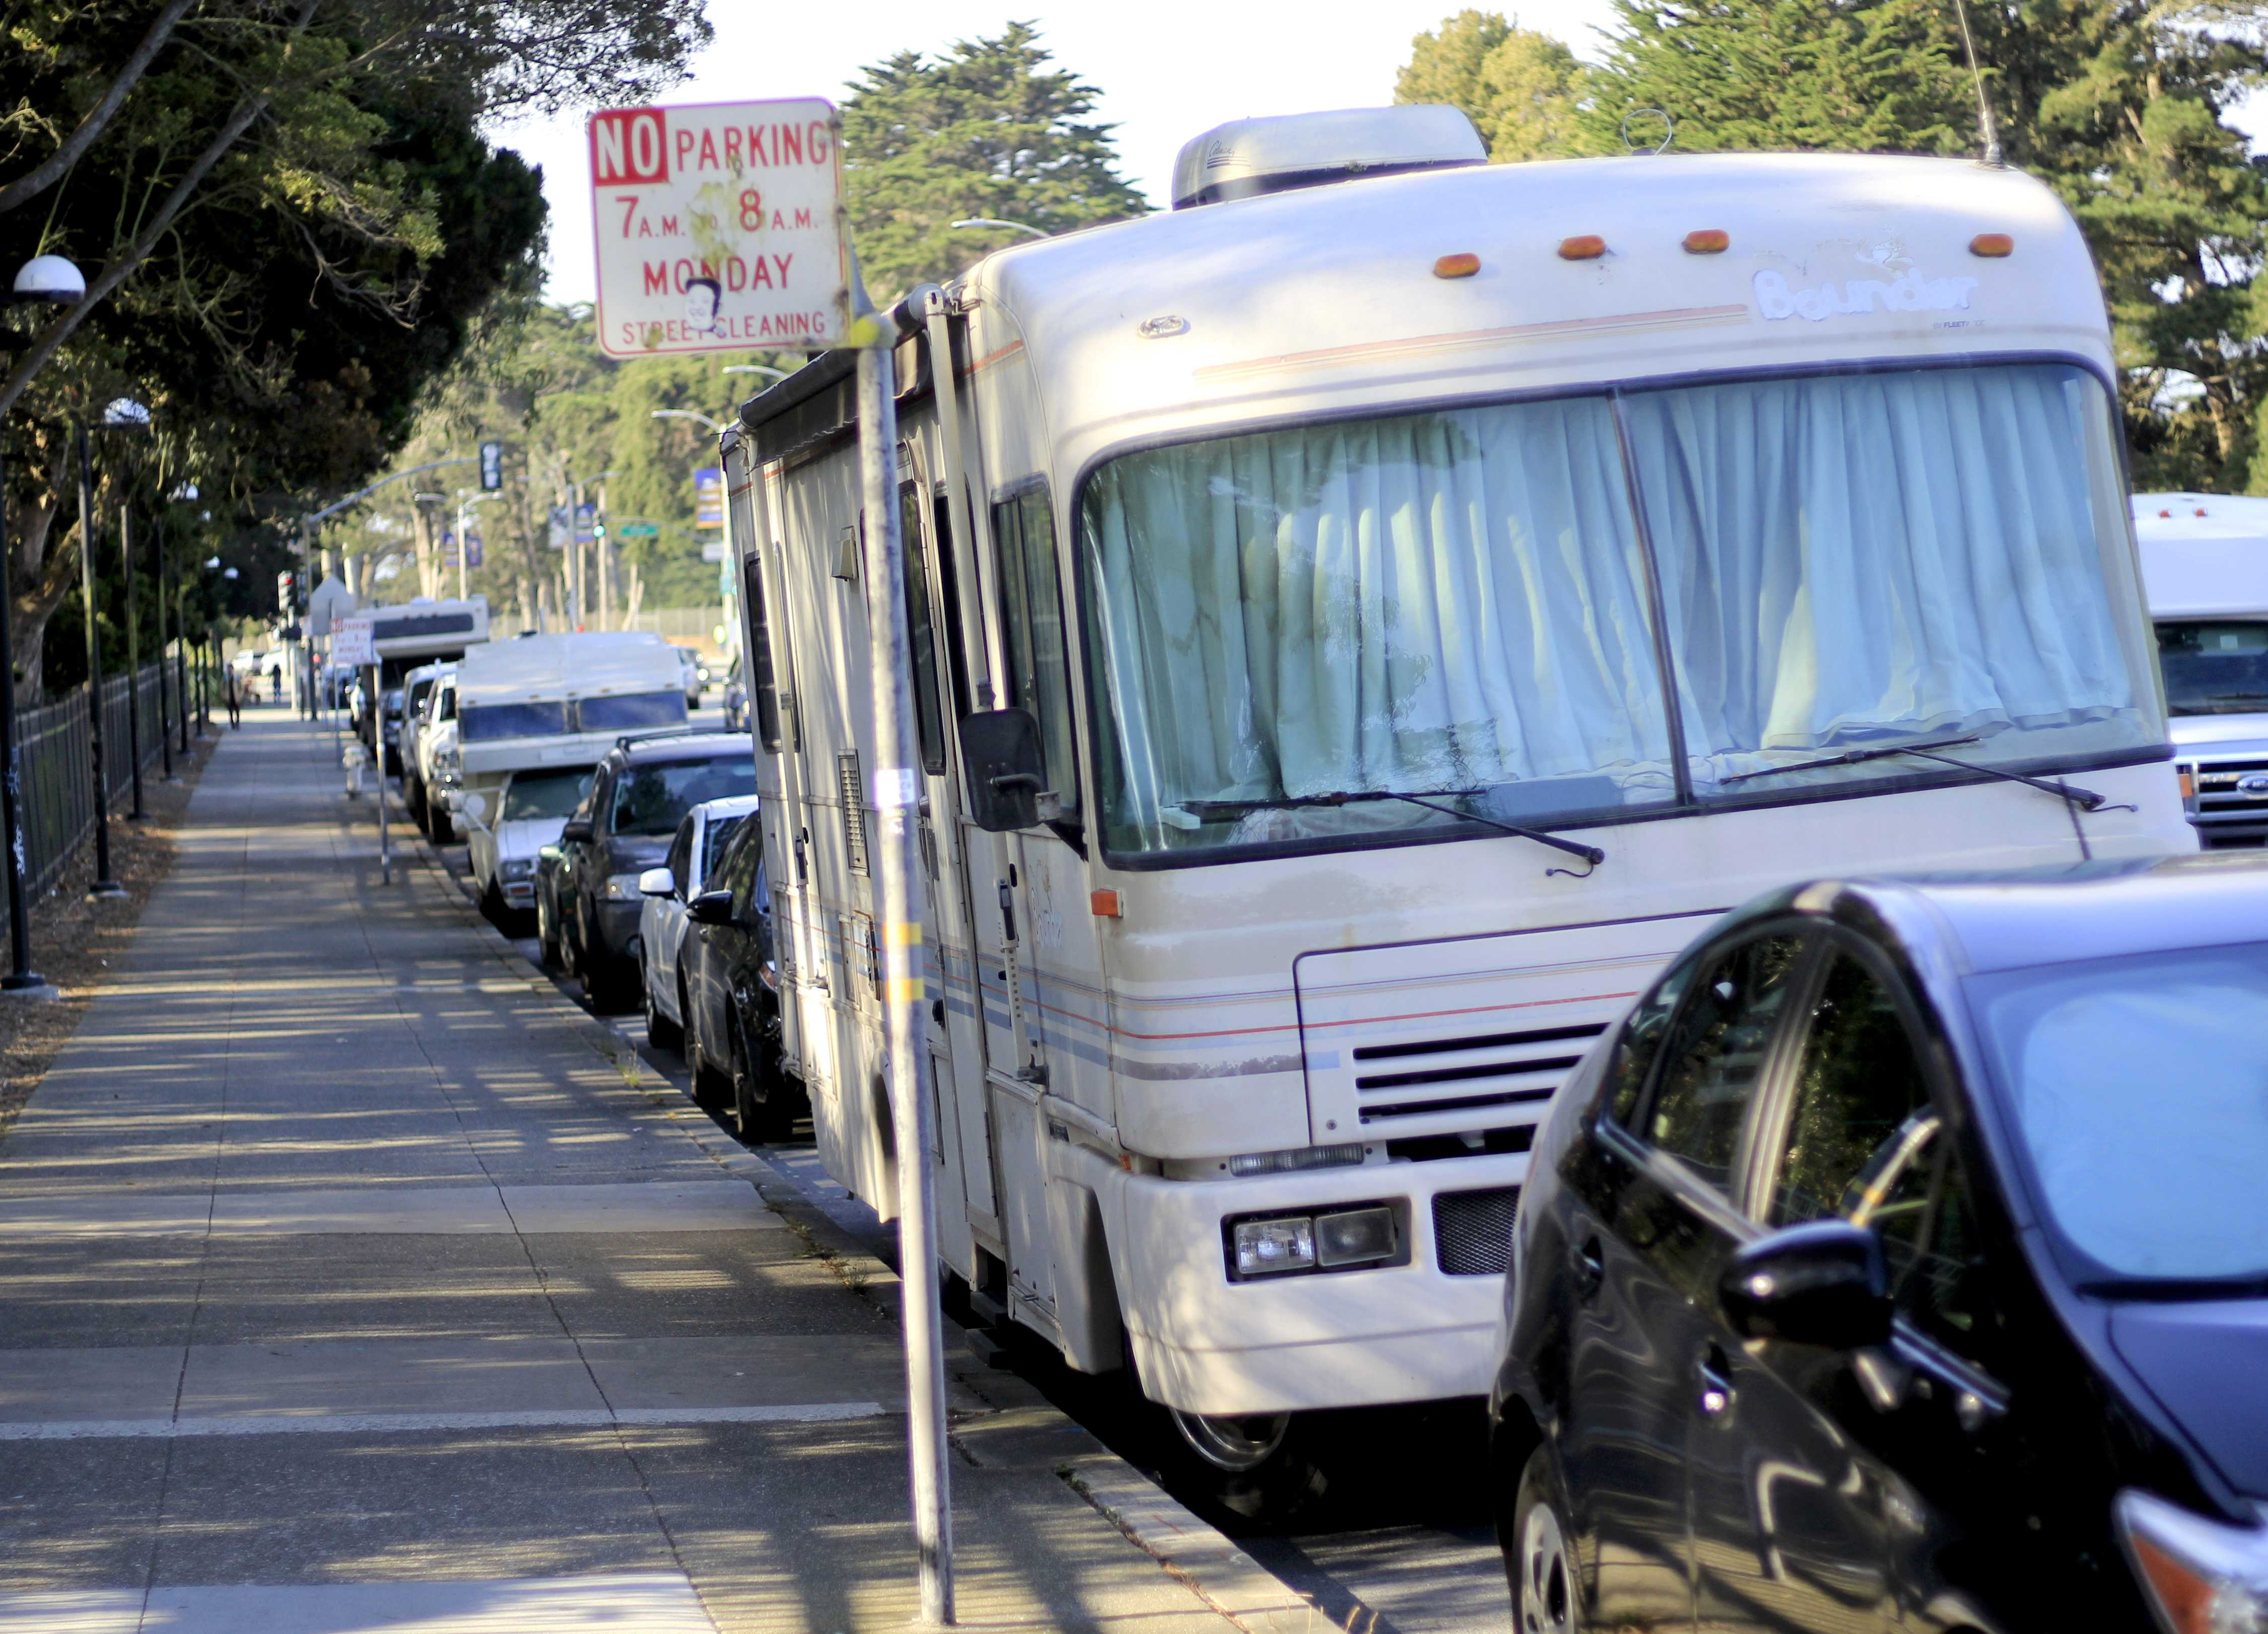 Parking shortage burdens people living in vehicles